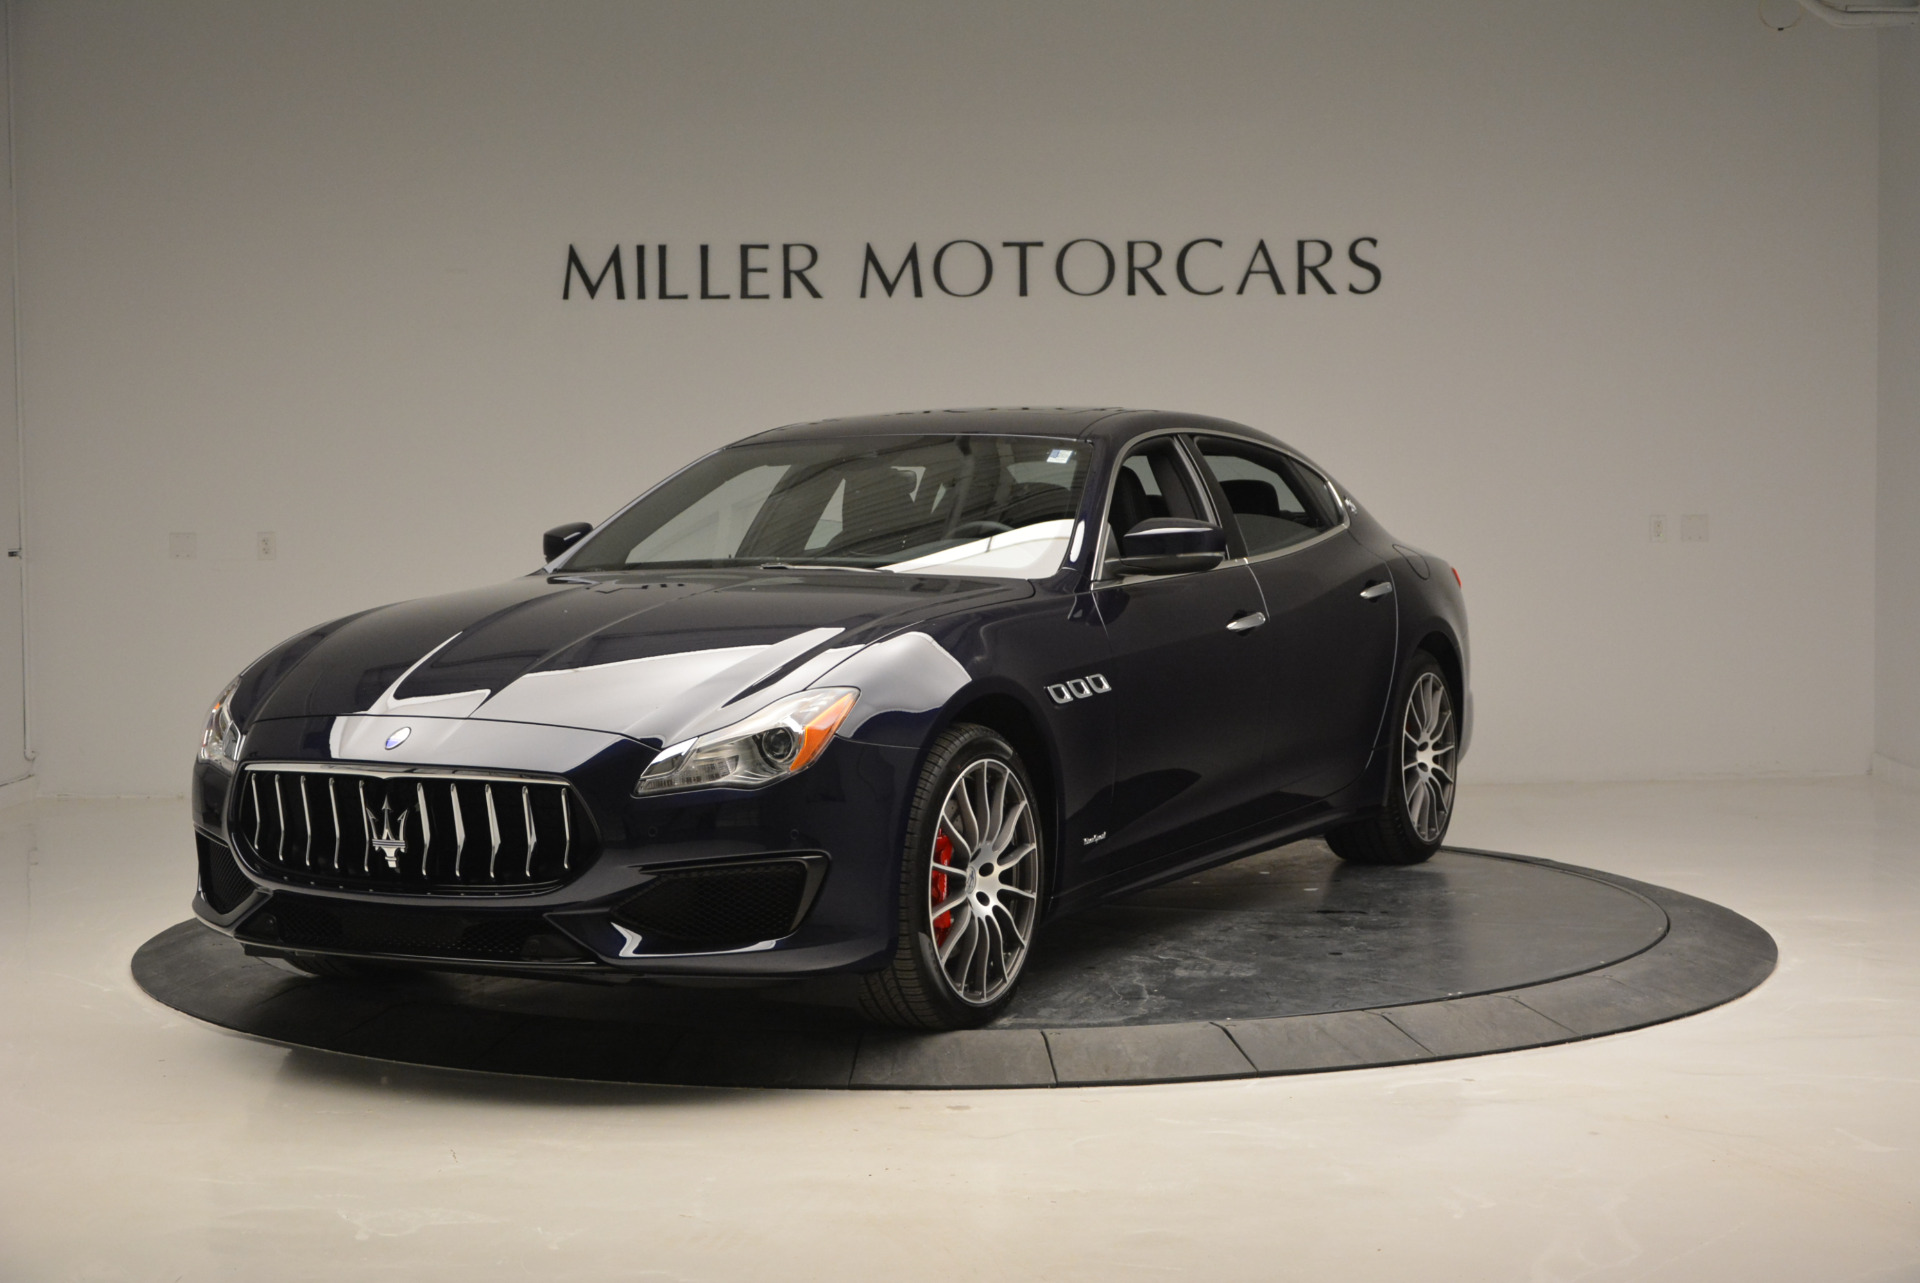 New 2017 Maserati Quattroporte S Q4 GranSport for sale Sold at Maserati of Westport in Westport CT 06880 1